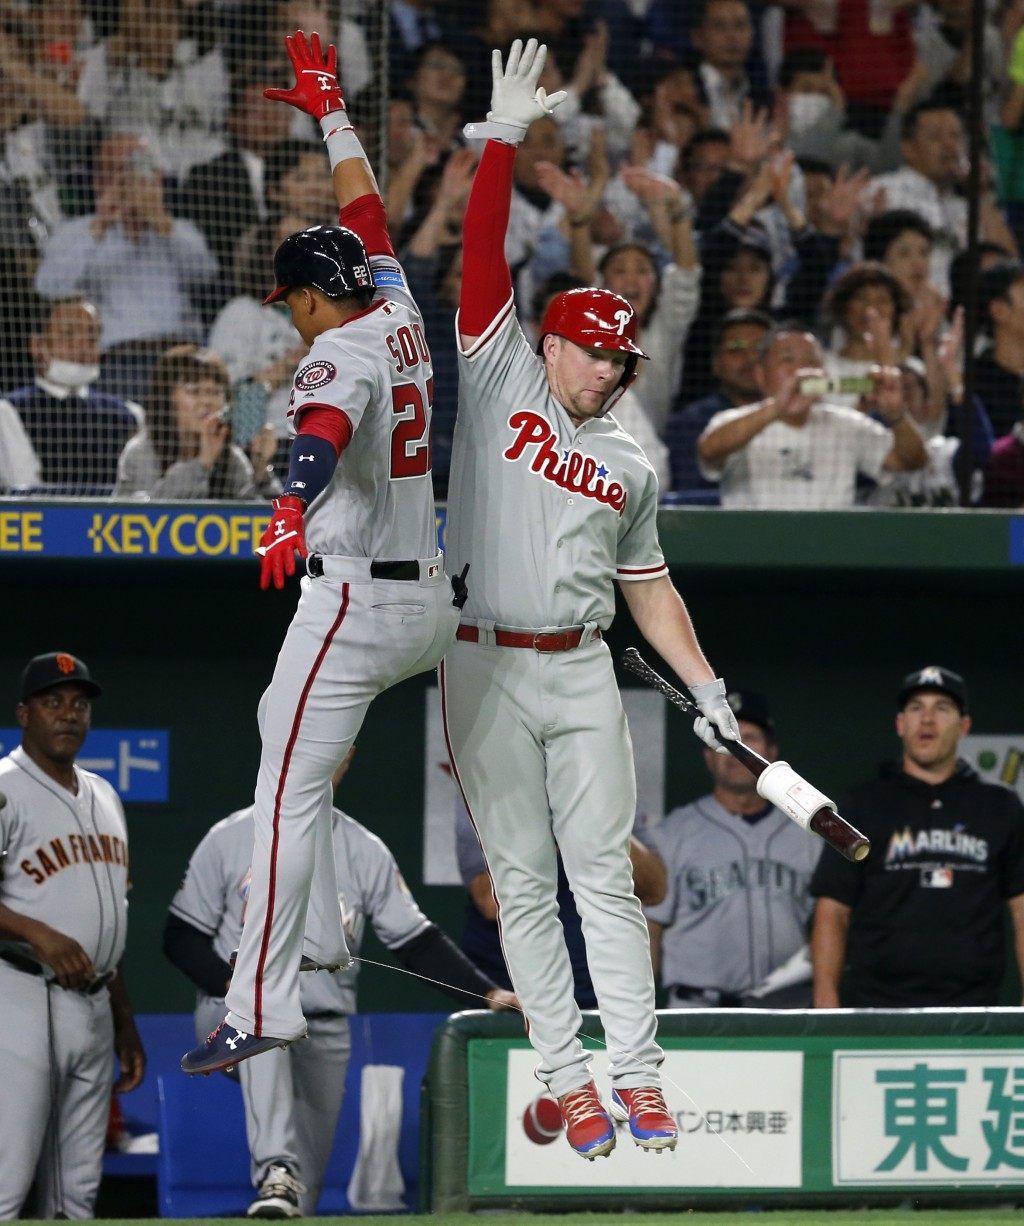 MLB All-Star left fielder Juan Soto, left, of the Washington Nationals celebrates with teammate Rhys Hoskins of the Philadelphia Phillies after hittin